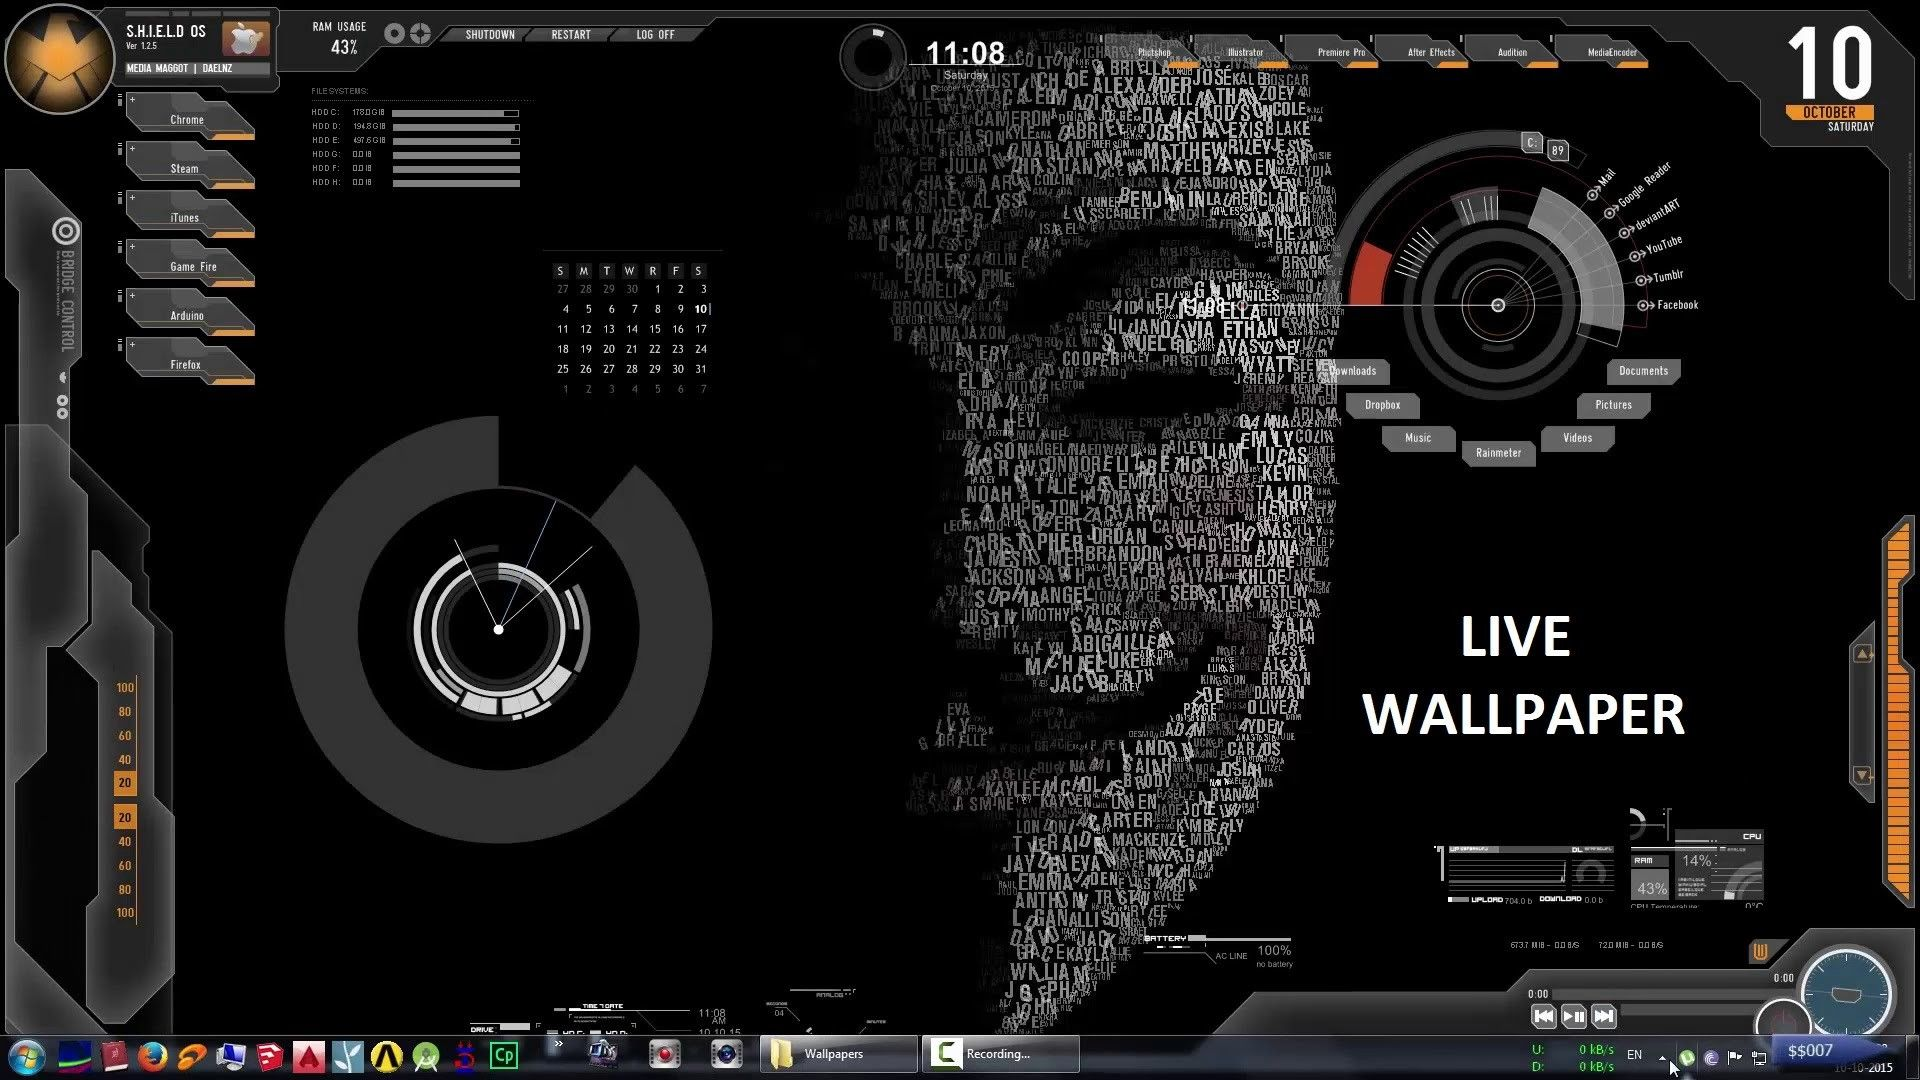 Pin On Live Wallpaper For Pc